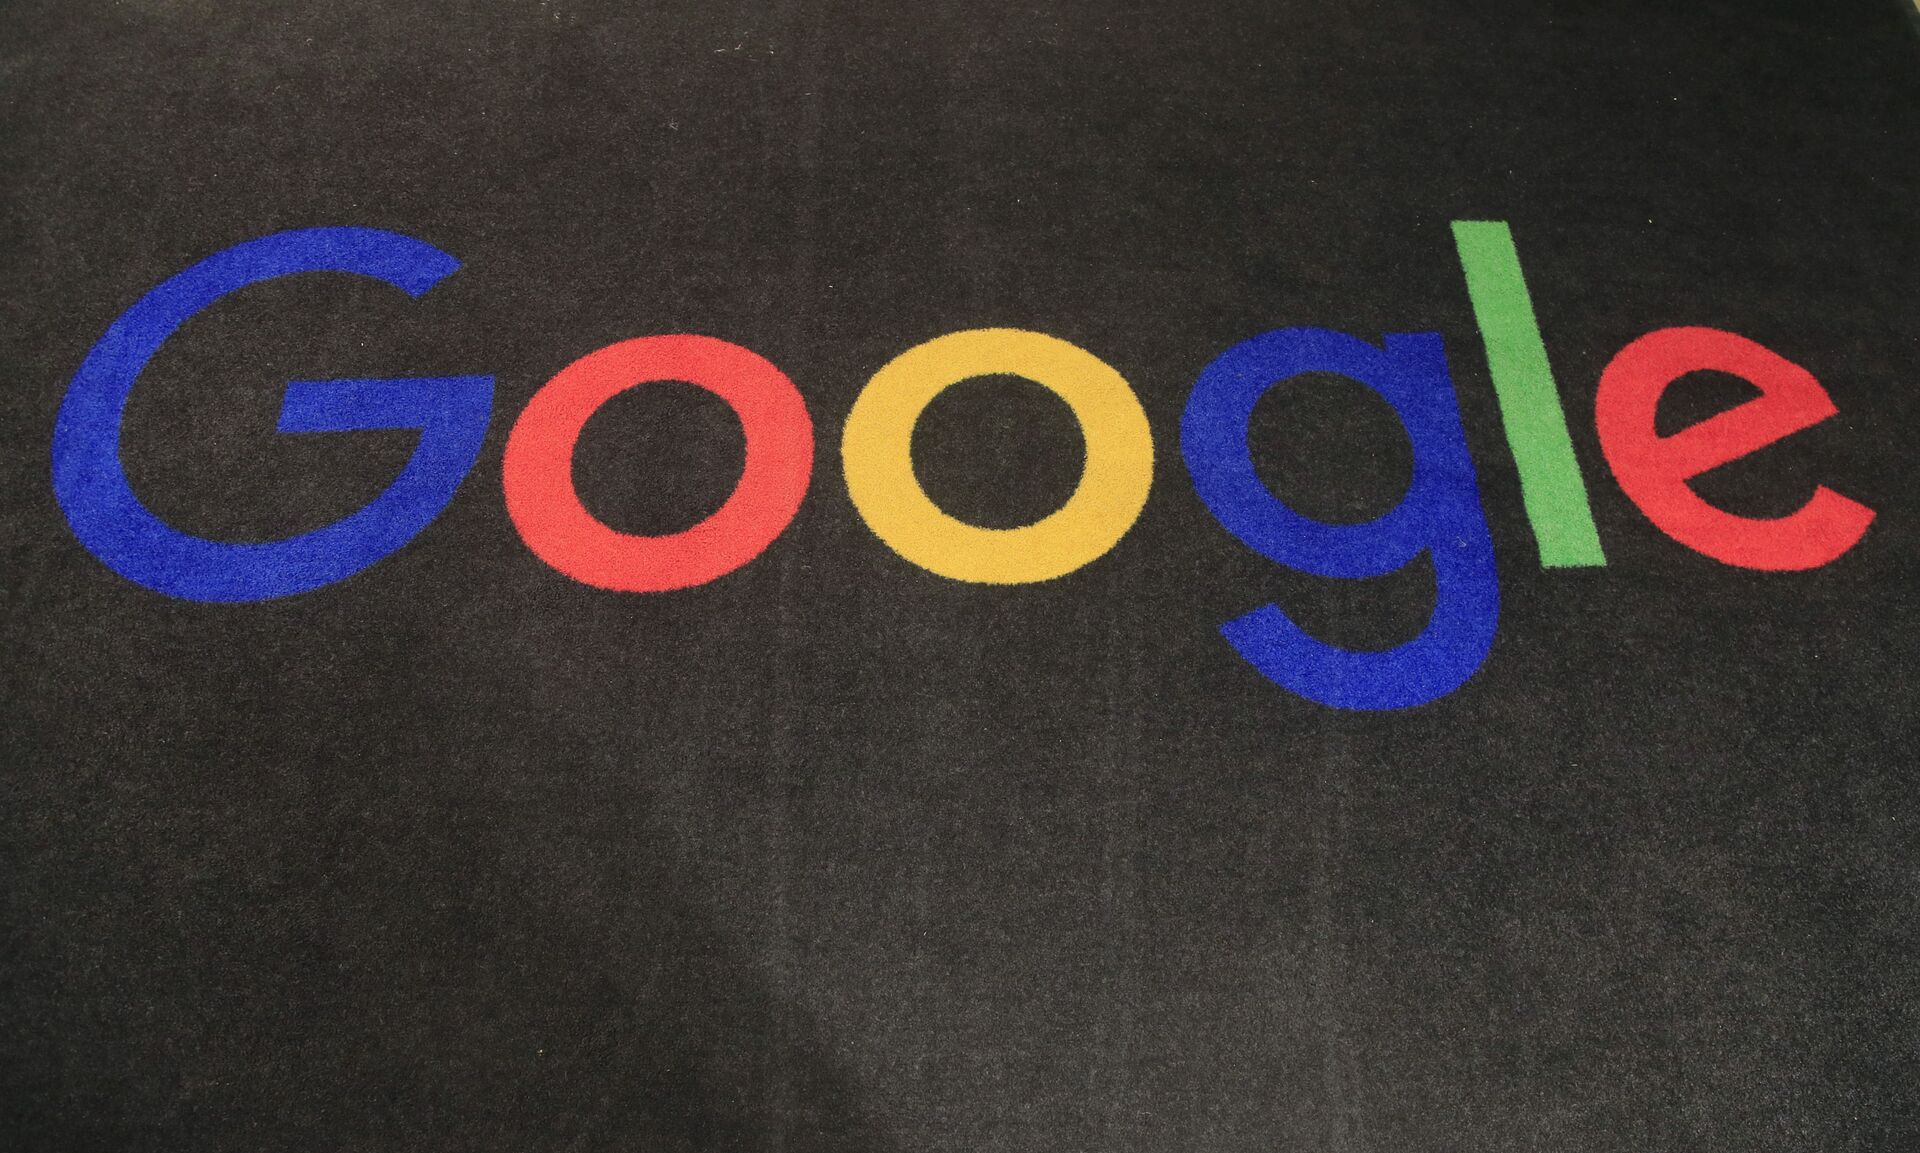 In this Nov. 18, 2019, file photo, the logo of Google is displayed on a carpet at the entrance hall of Google France in Paris. - Sputnik International, 1920, 07.09.2021